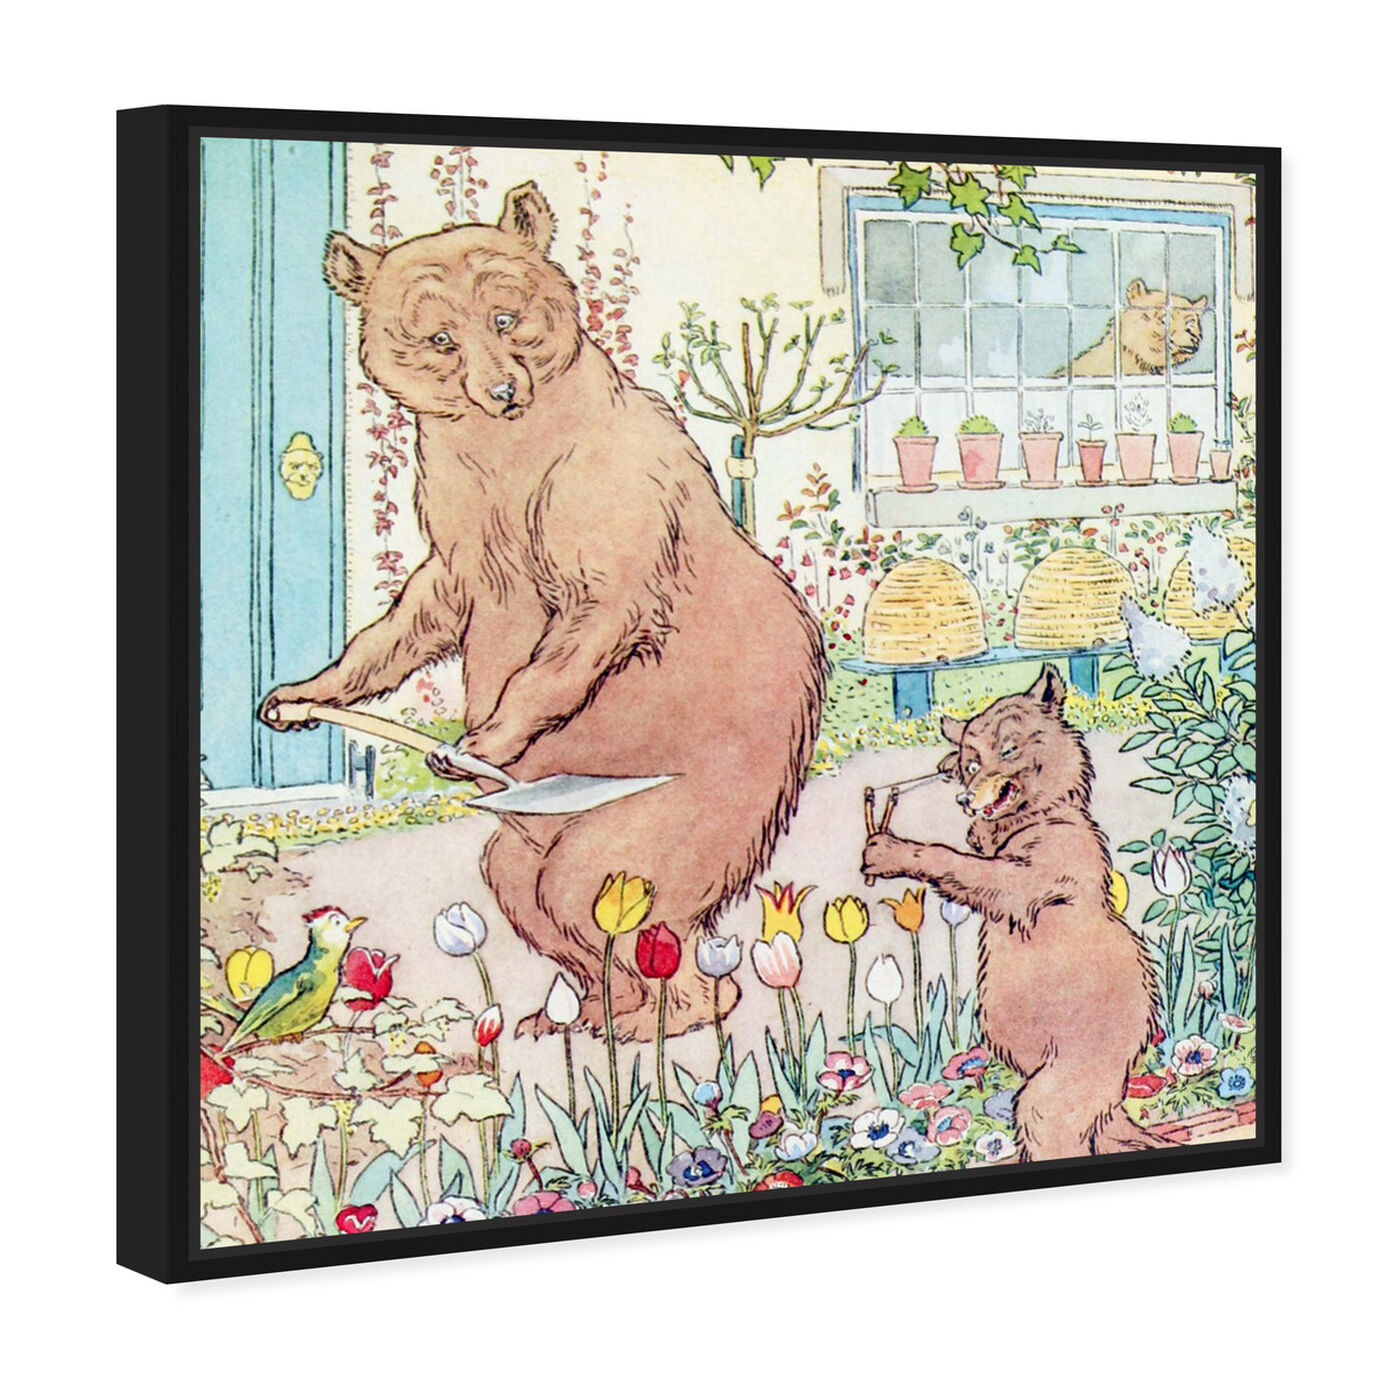 Angled view of Three Bears featuring animals and zoo and wild animals art.